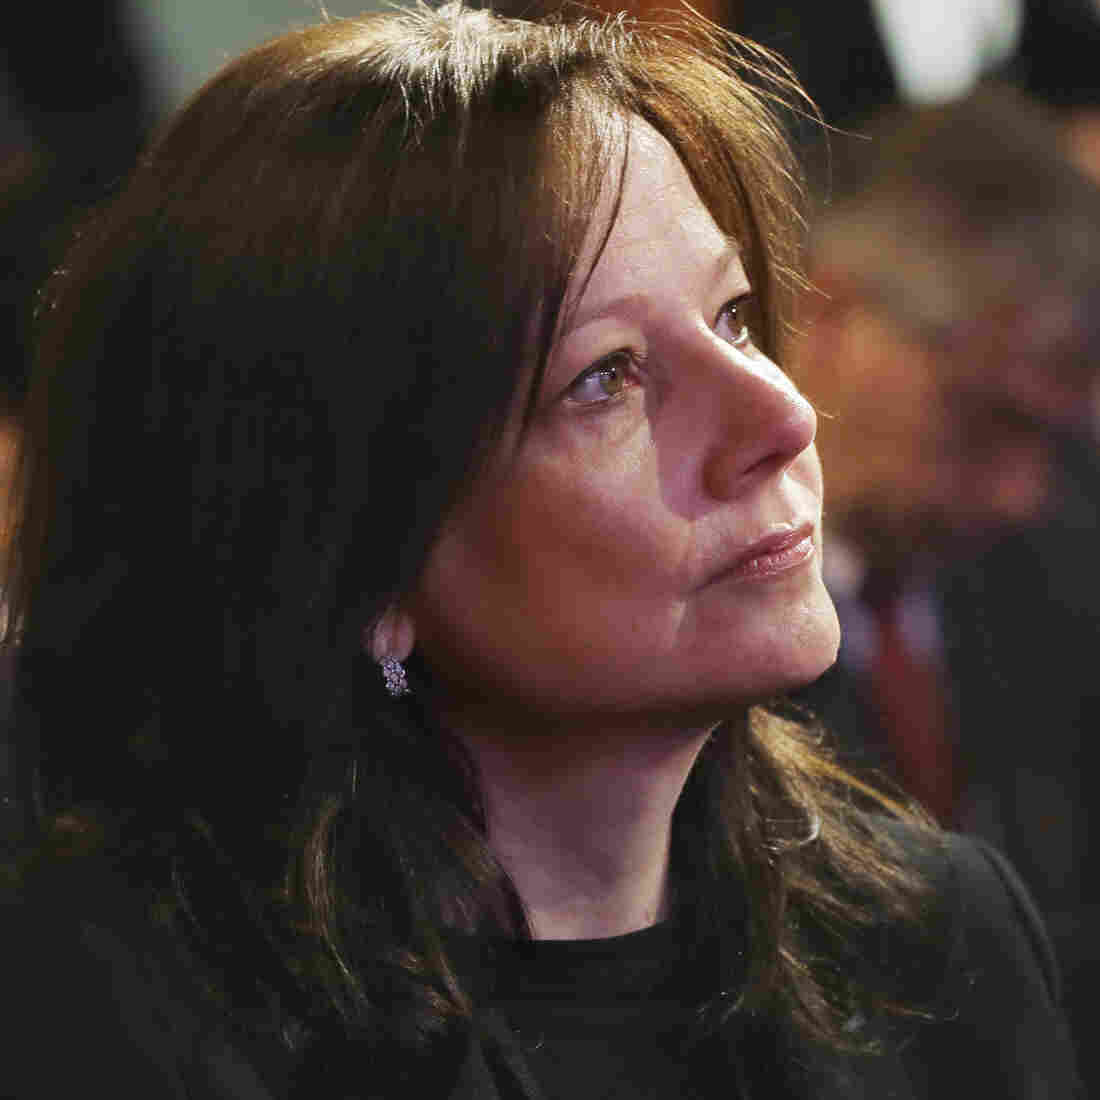 General Motors executive Mary Barra, seen here in January, will become the automaker's first female CEO. She will replace Dan Akerson, 65, who is retiring.